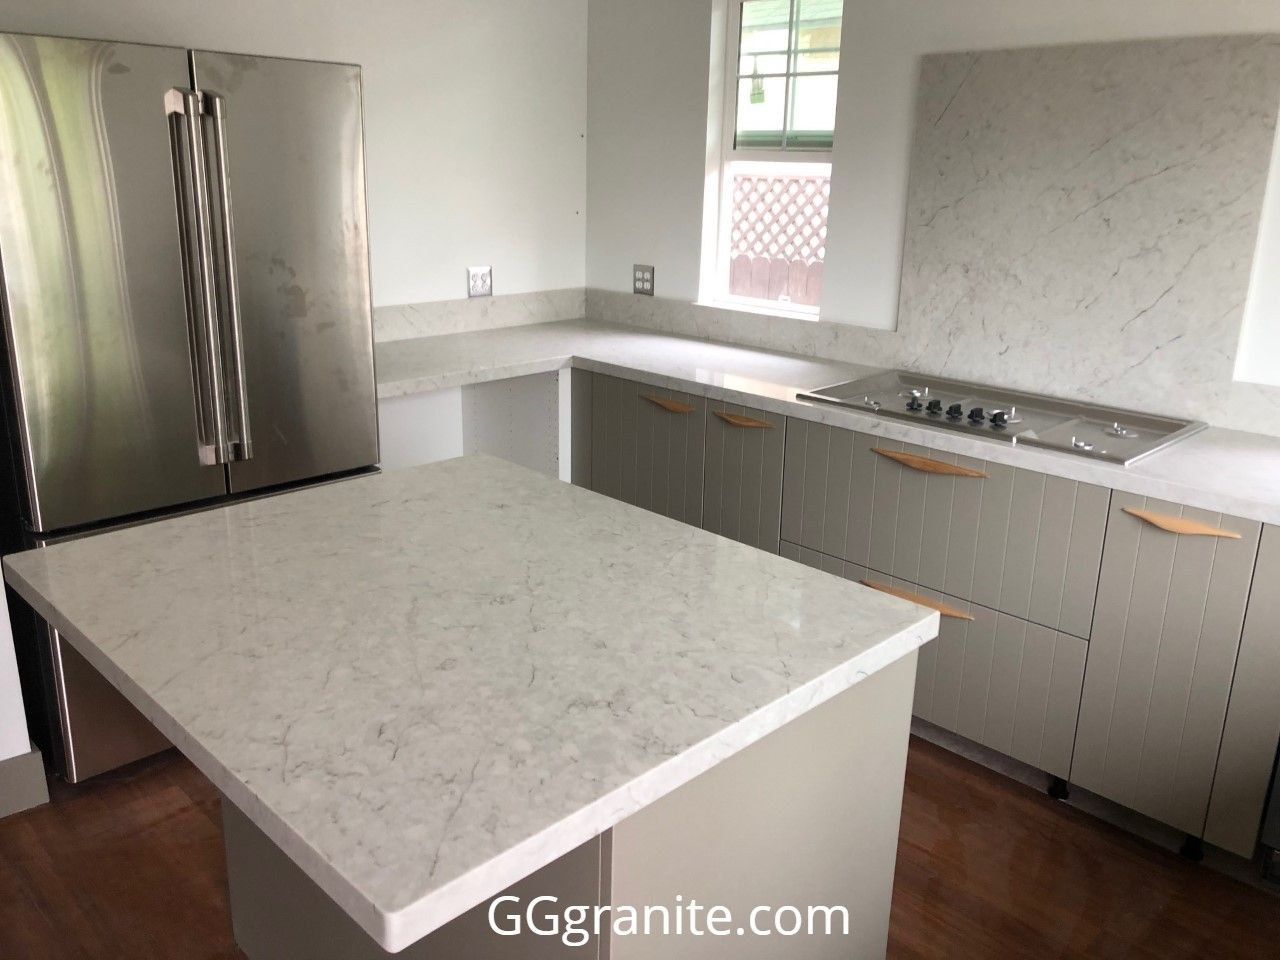 Quartz Countertops Makeover In 2020 Countertops Granite Countertops Kitchen Modern Countertops